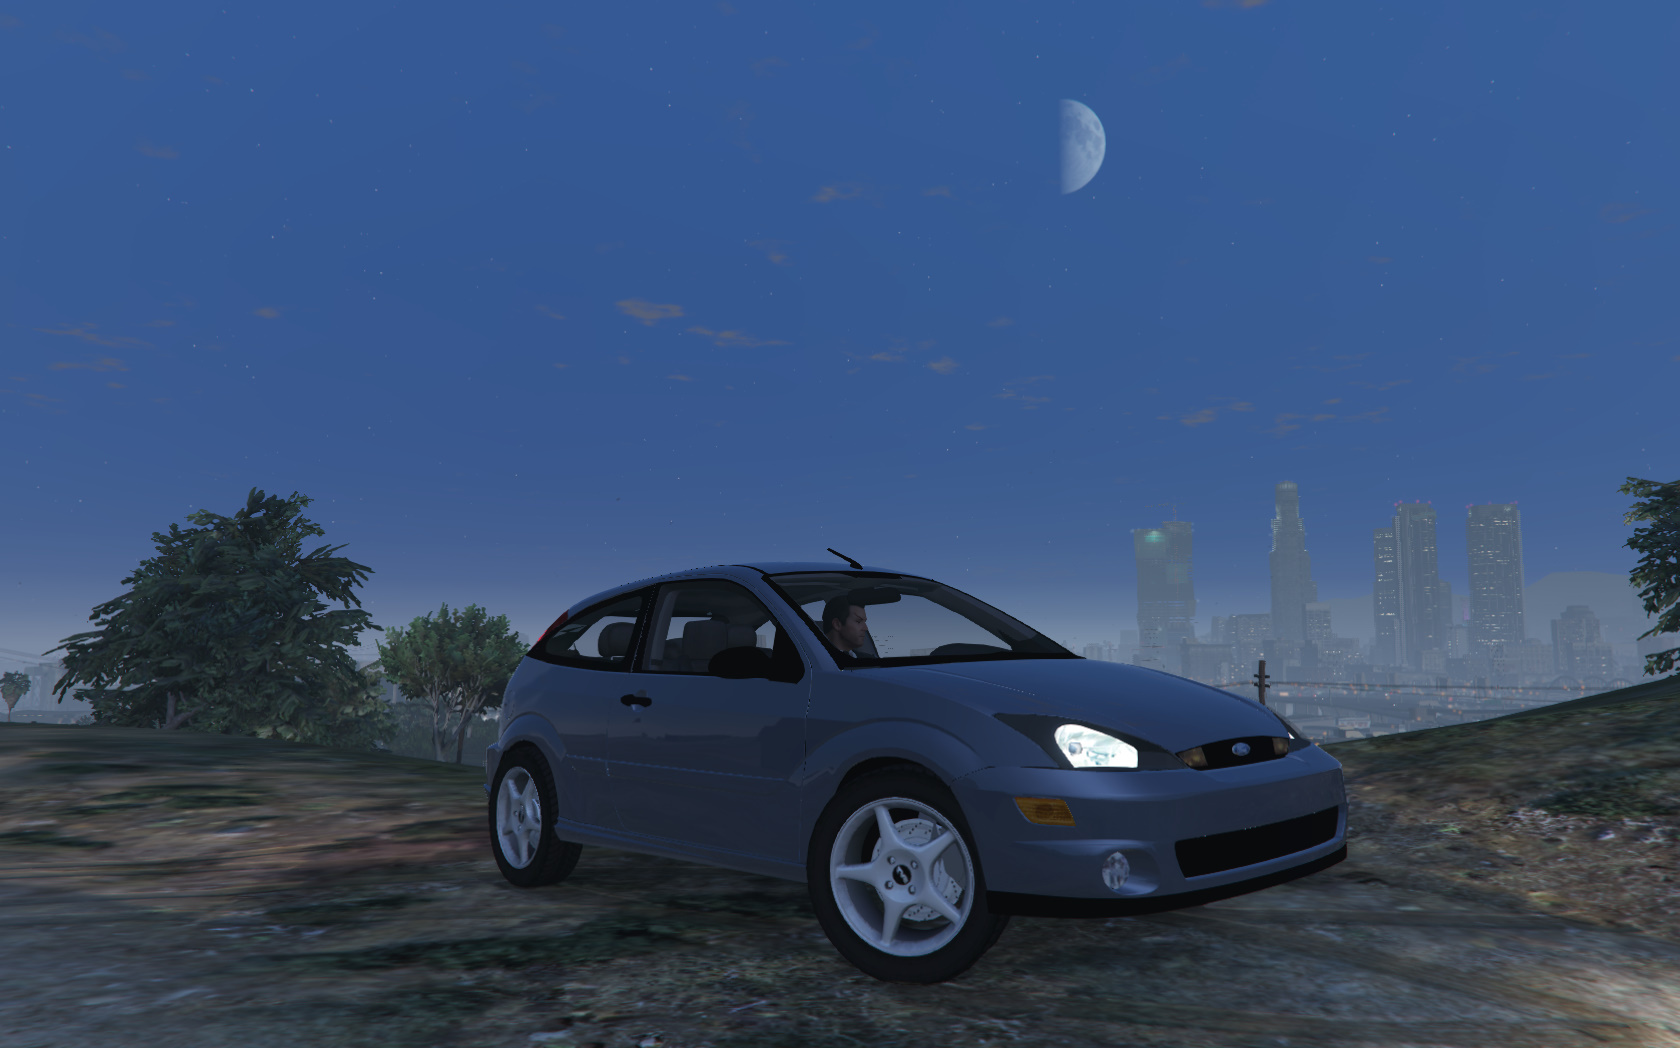 Ford Focus Svt Mk1 Gta5 Mods Com